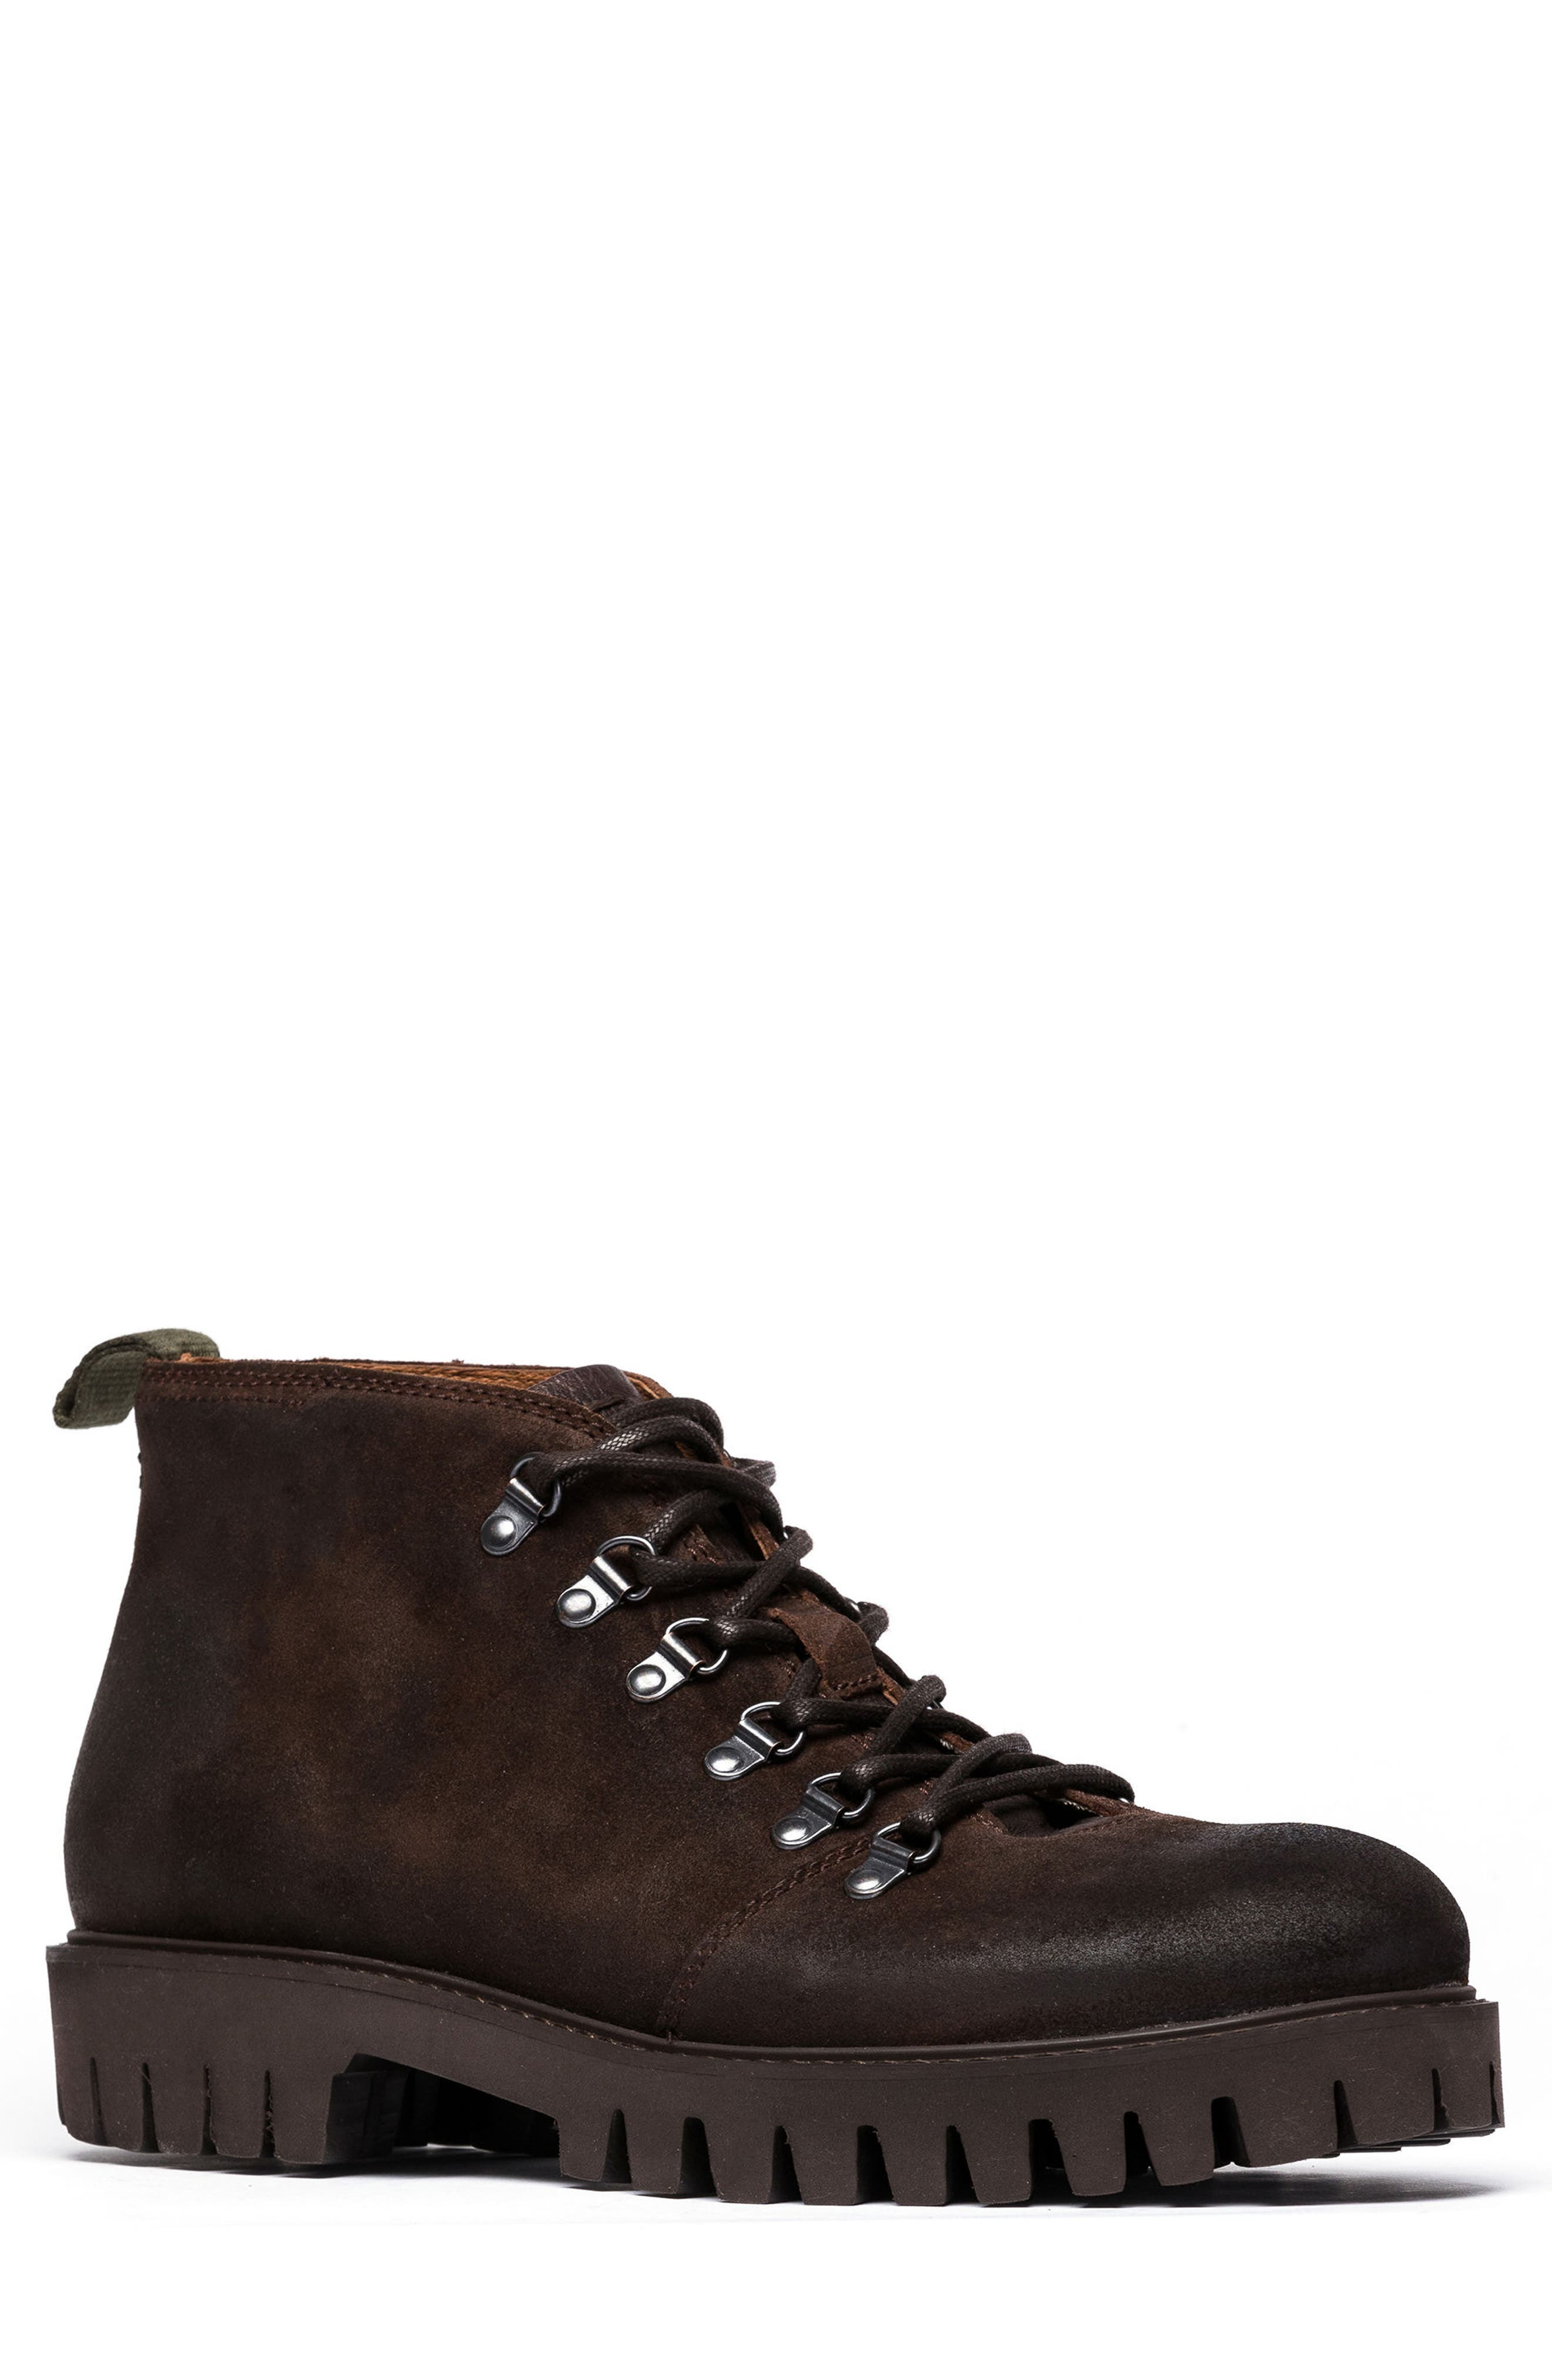 Rees River Lugged Boot,                         Main,                         color, 201